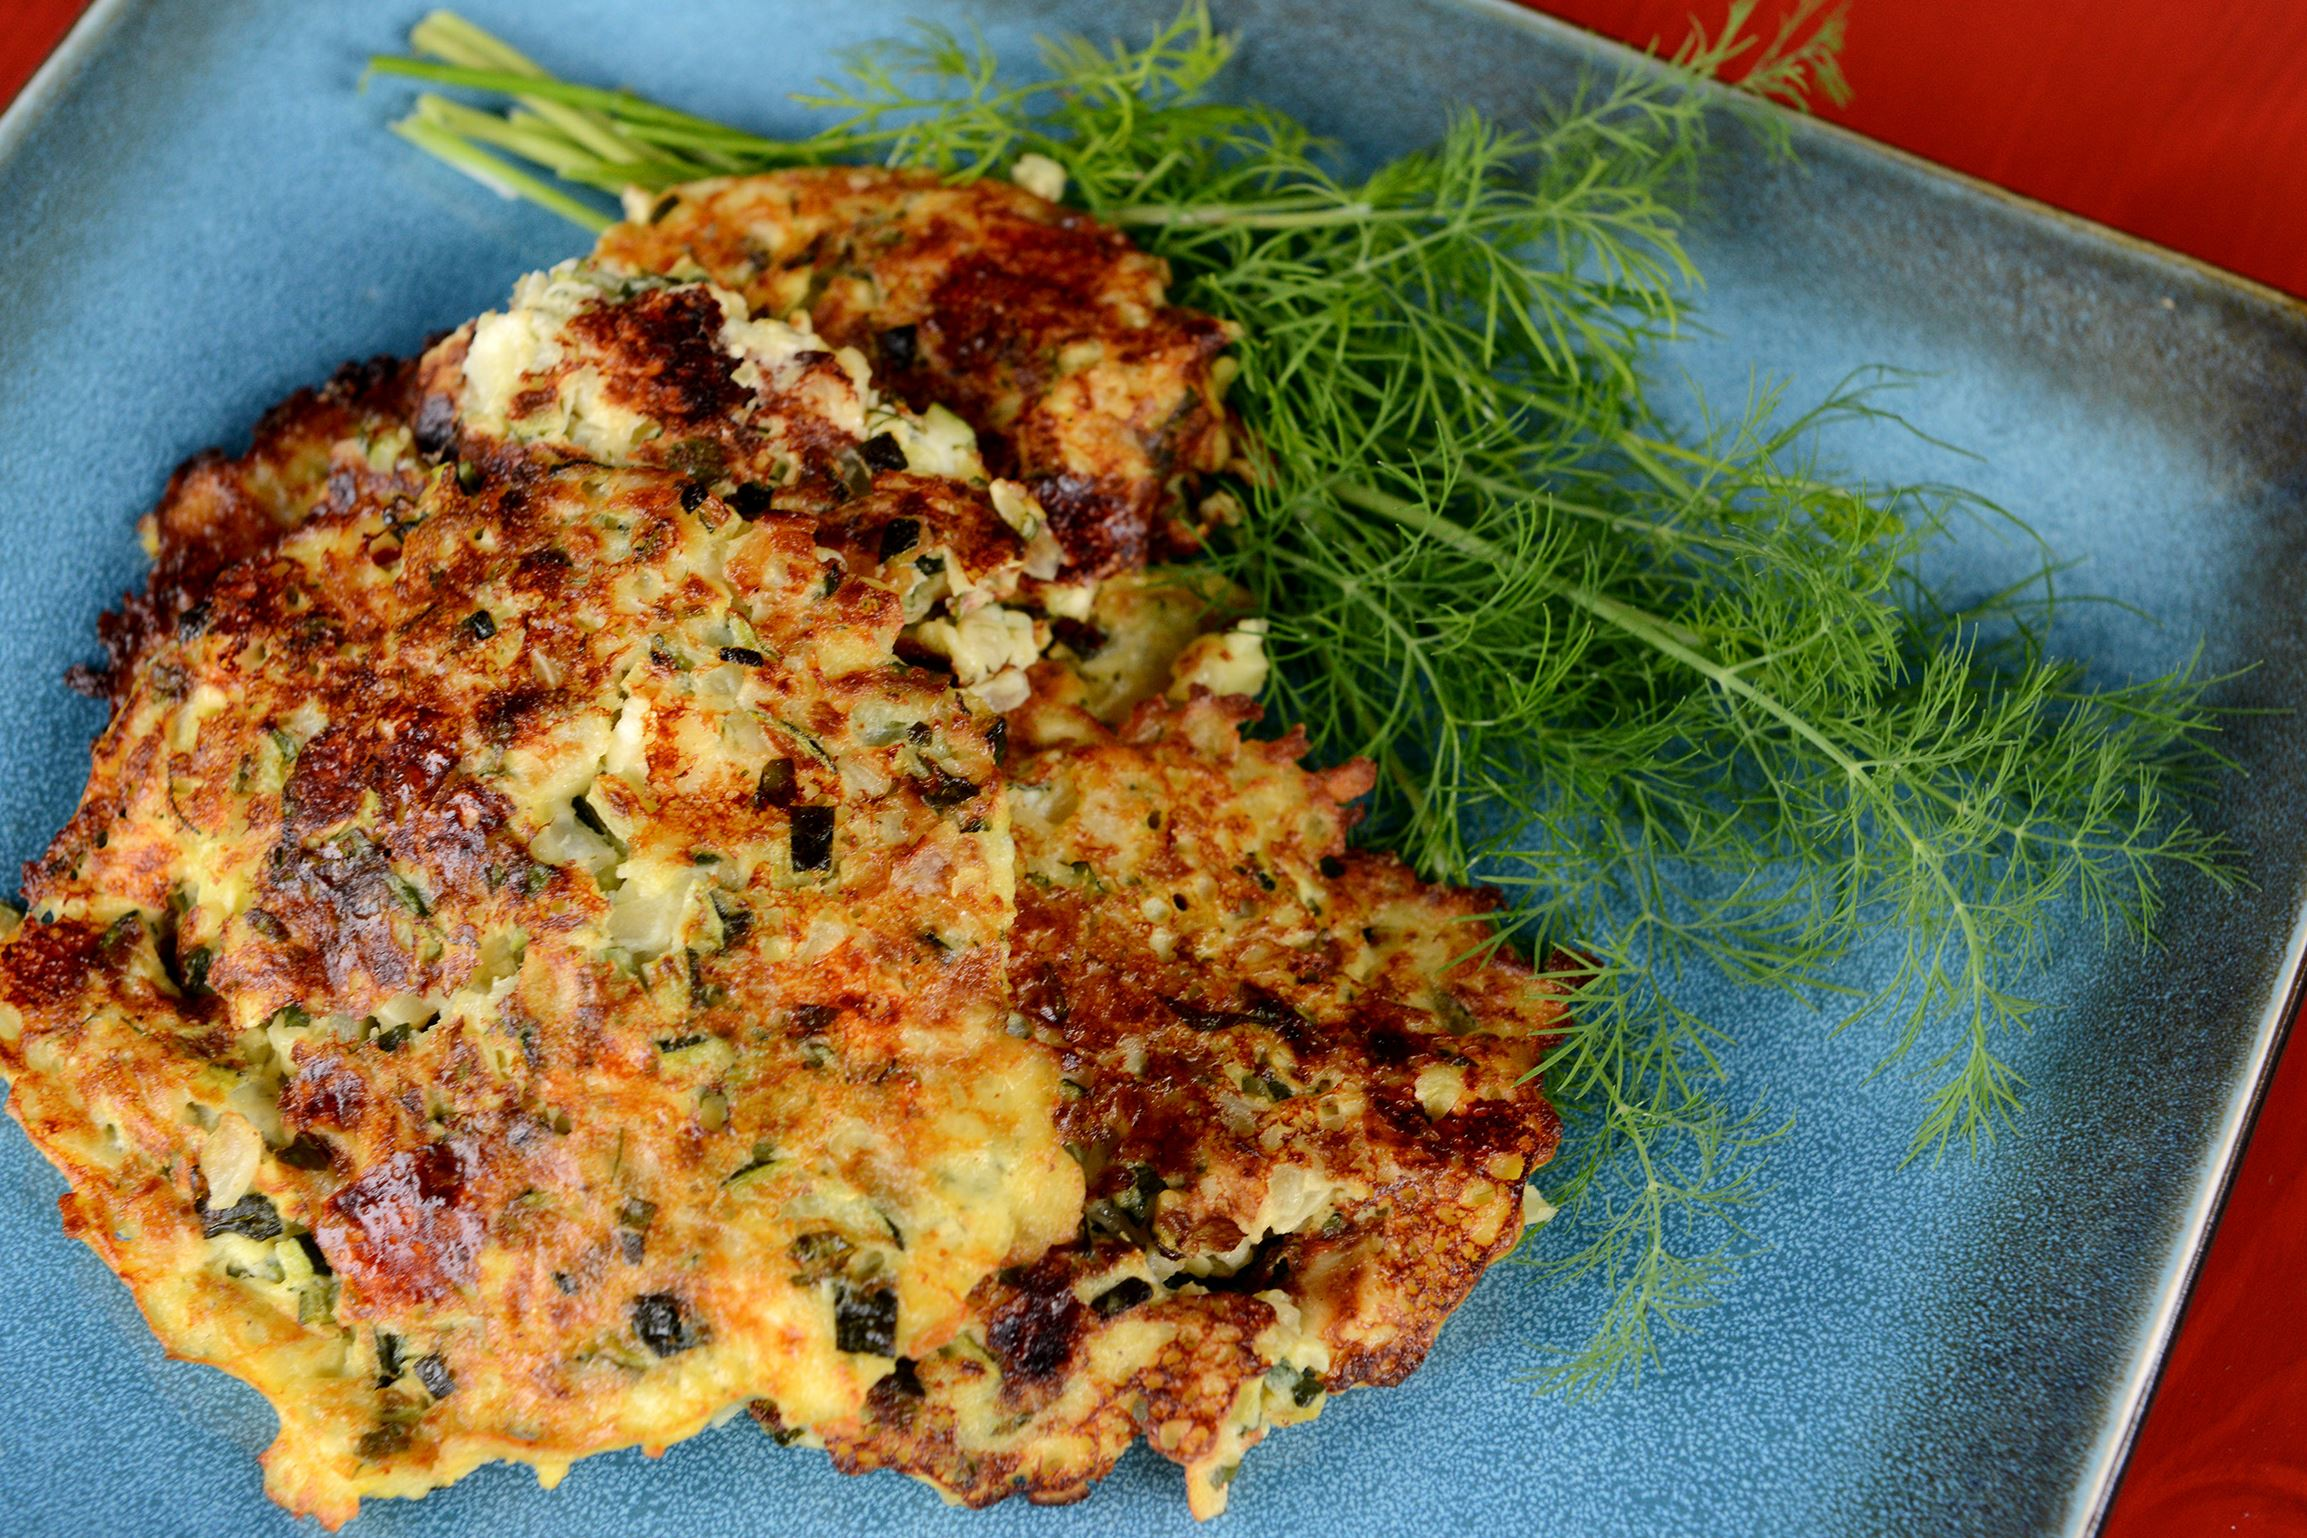 ... -10 Zucchini fritters, made with onions, feta cheese, dill and mint